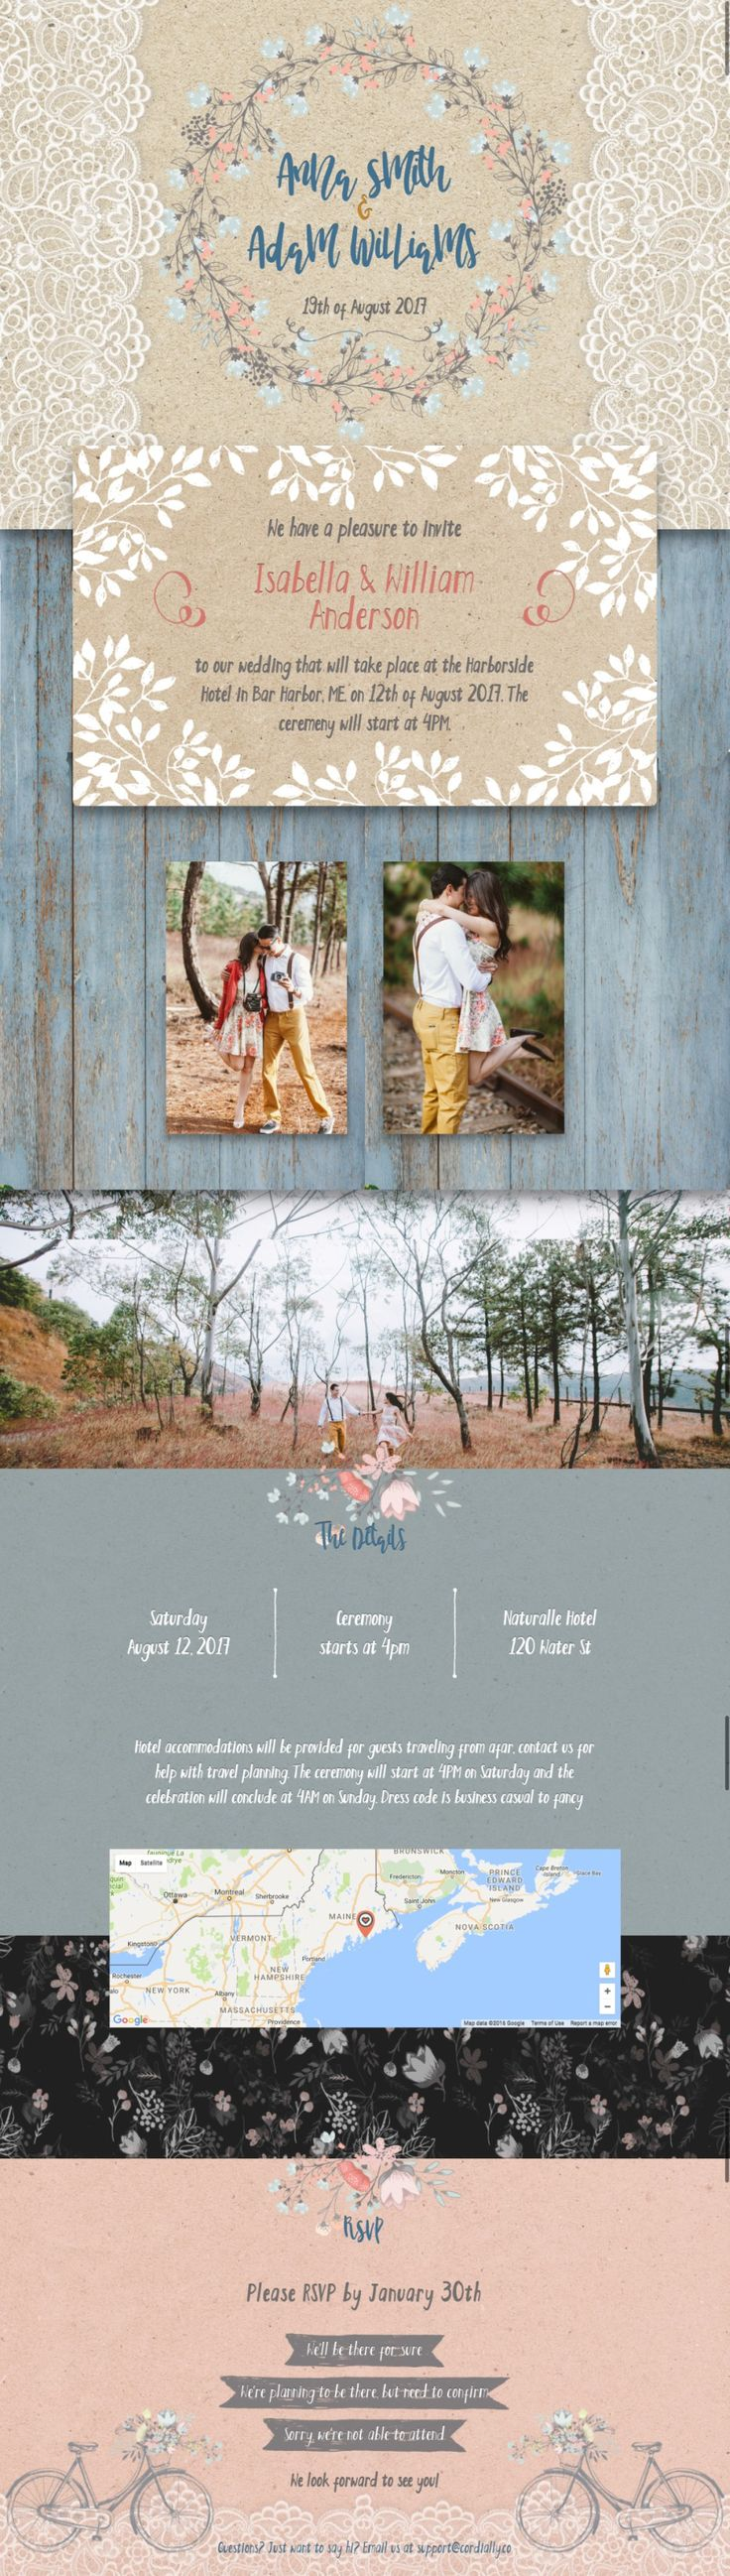 New rustic wedding invitation template at cordially. Free wedding website. Amazing rustic wedding invitation website.